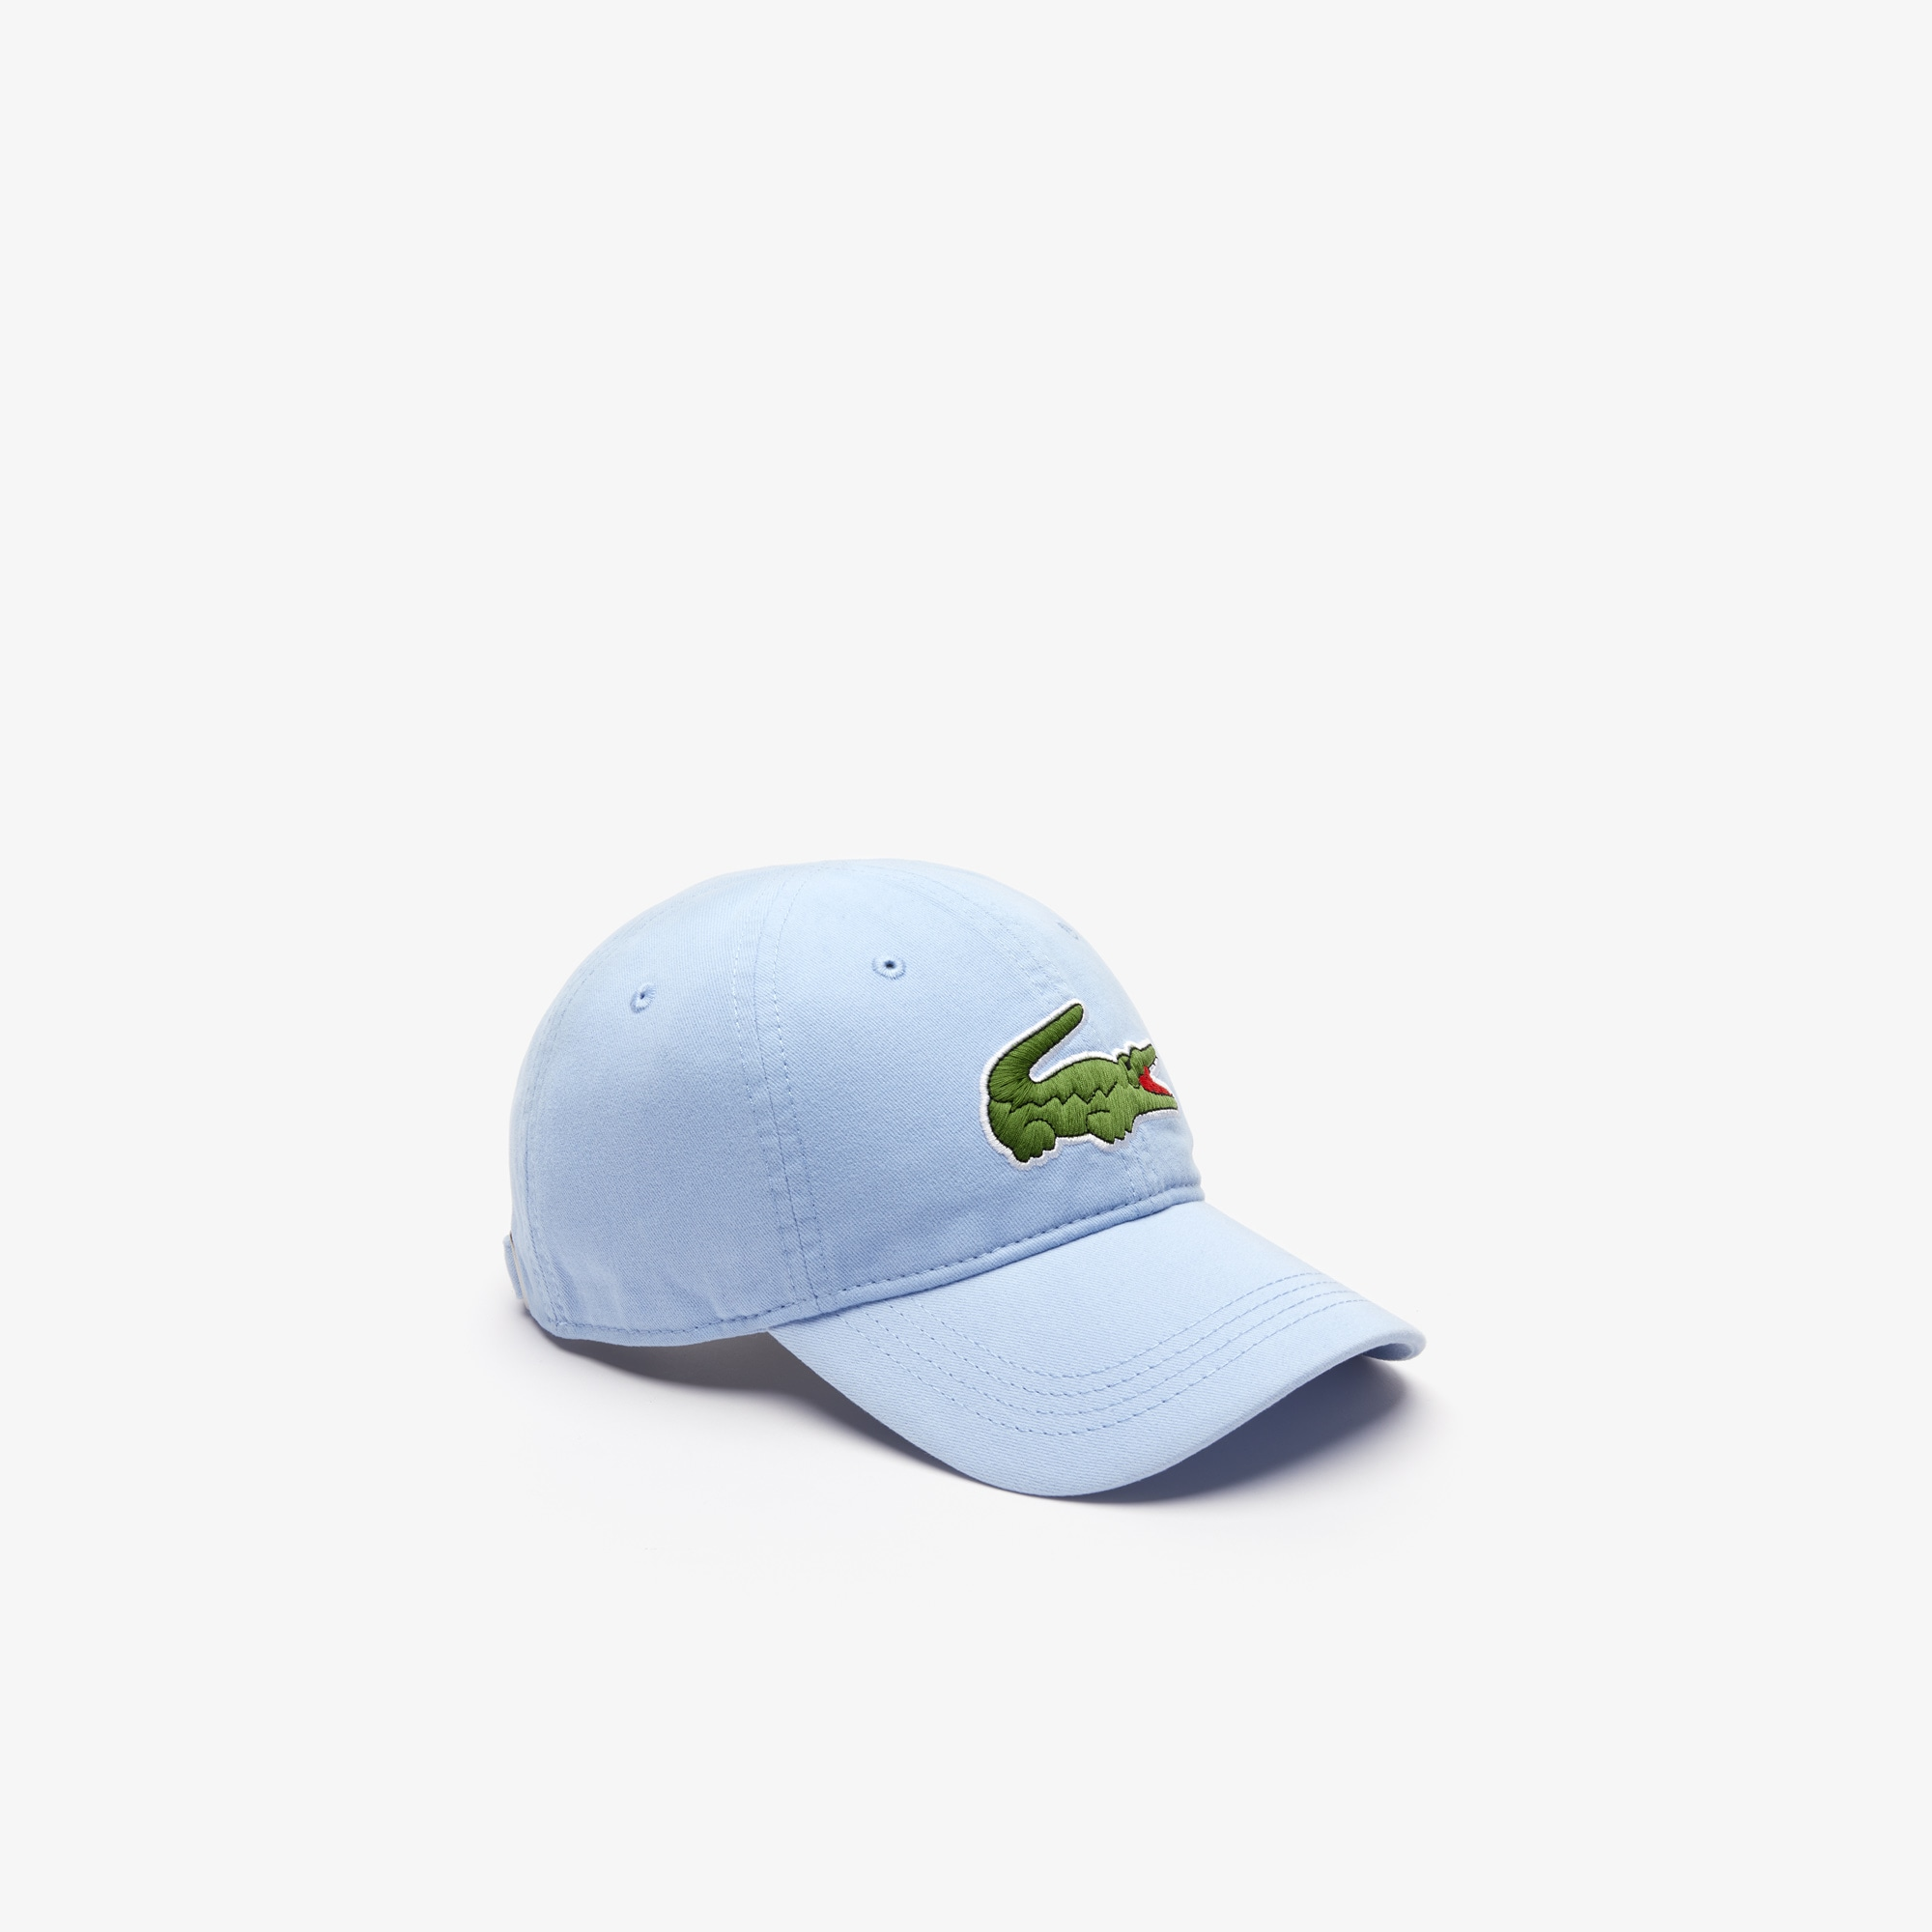 eeb4f856 Men's Caps and Hats | Men's Accessories | LACOSTE